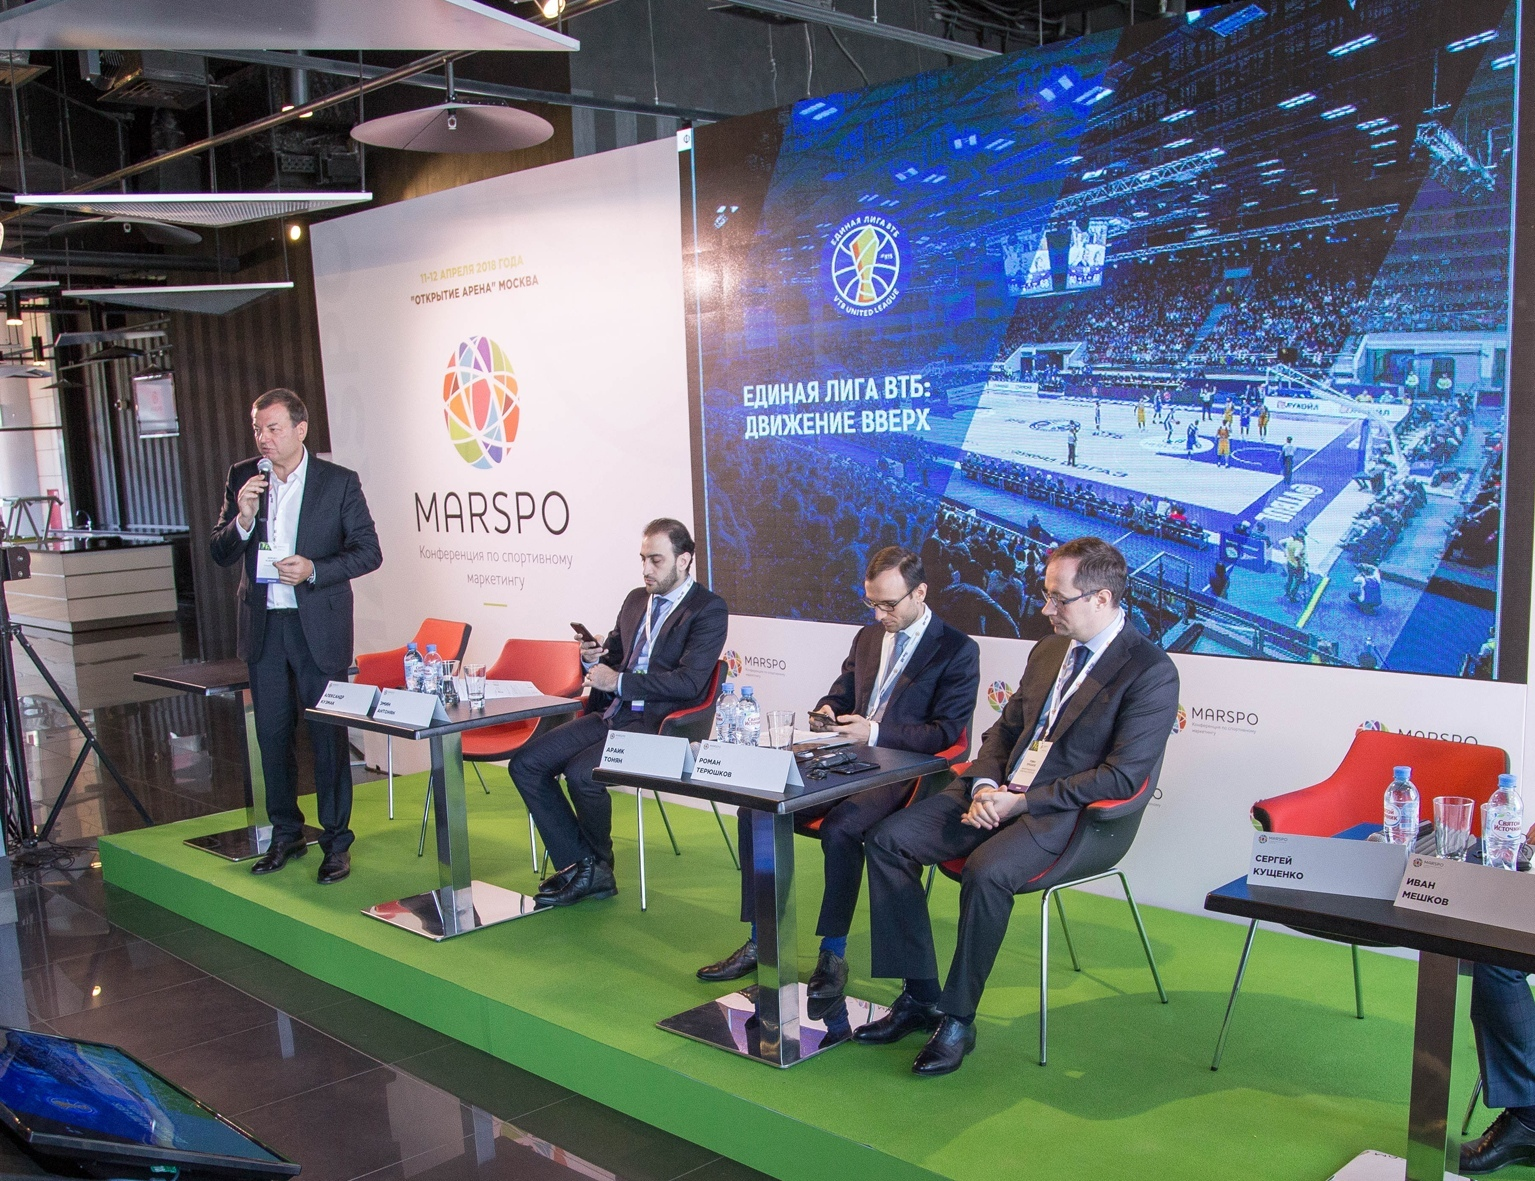 VTB United League To Present At MarSpo Conference